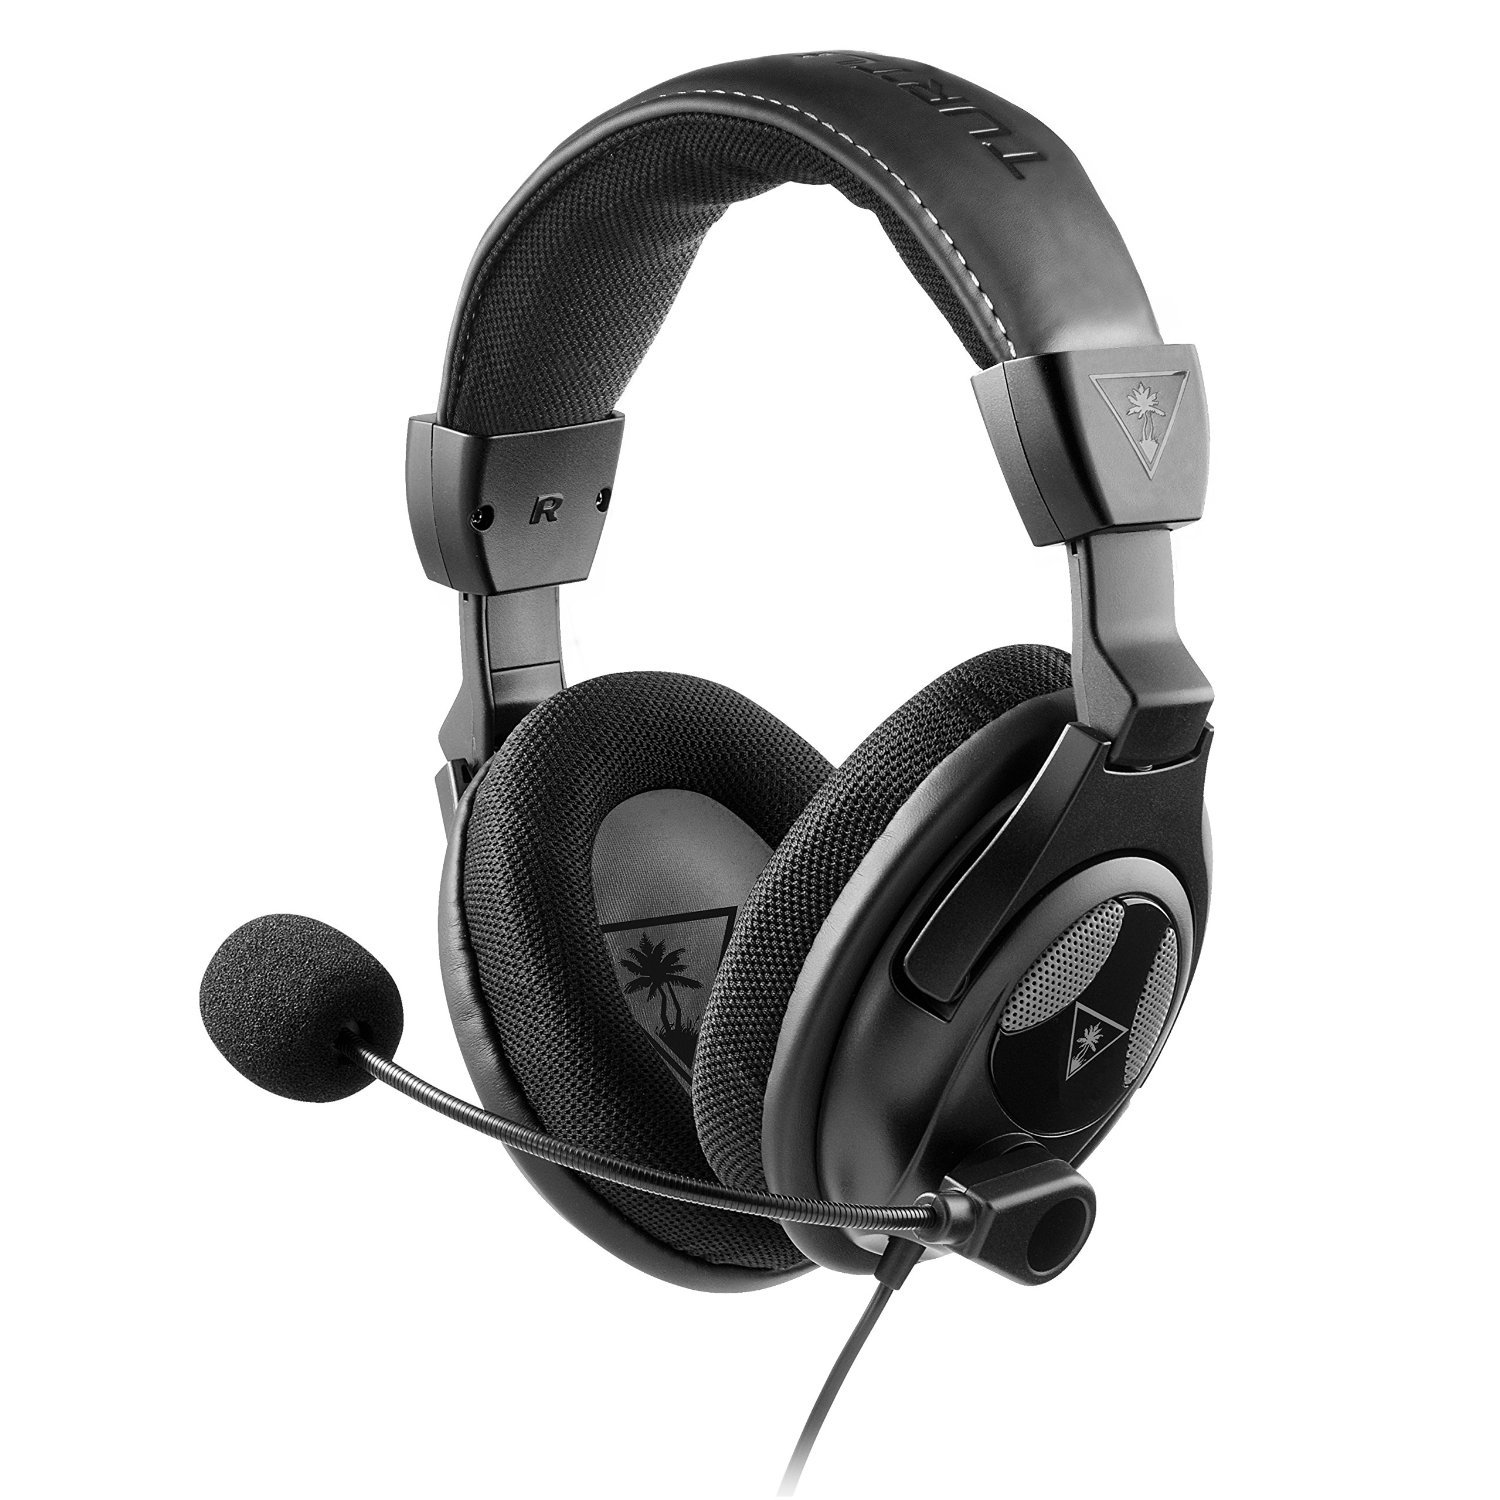 Turtle Beach Ear Force PX24 Universal Gaming Headset for PS4 image